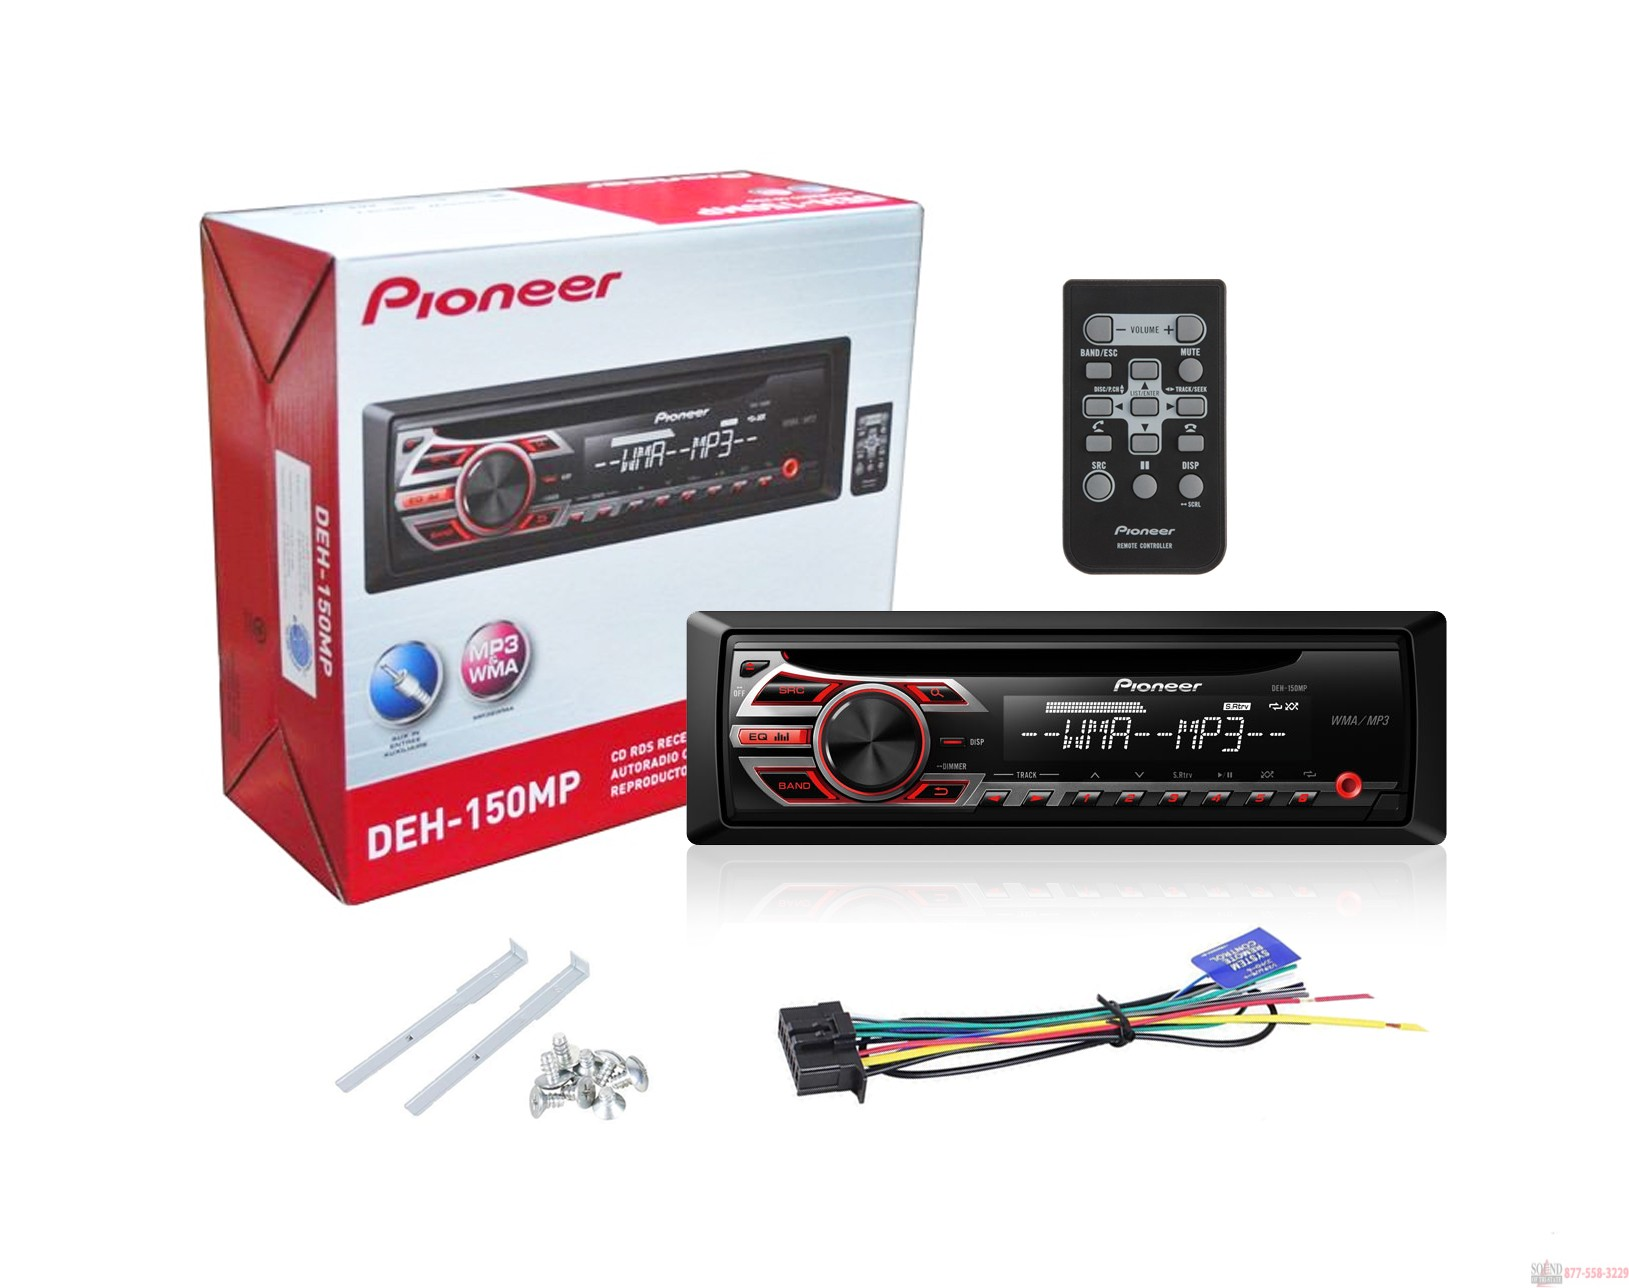 pioneer deh 150mp car stereo with mp3 playback for sale in jamaica jadeals